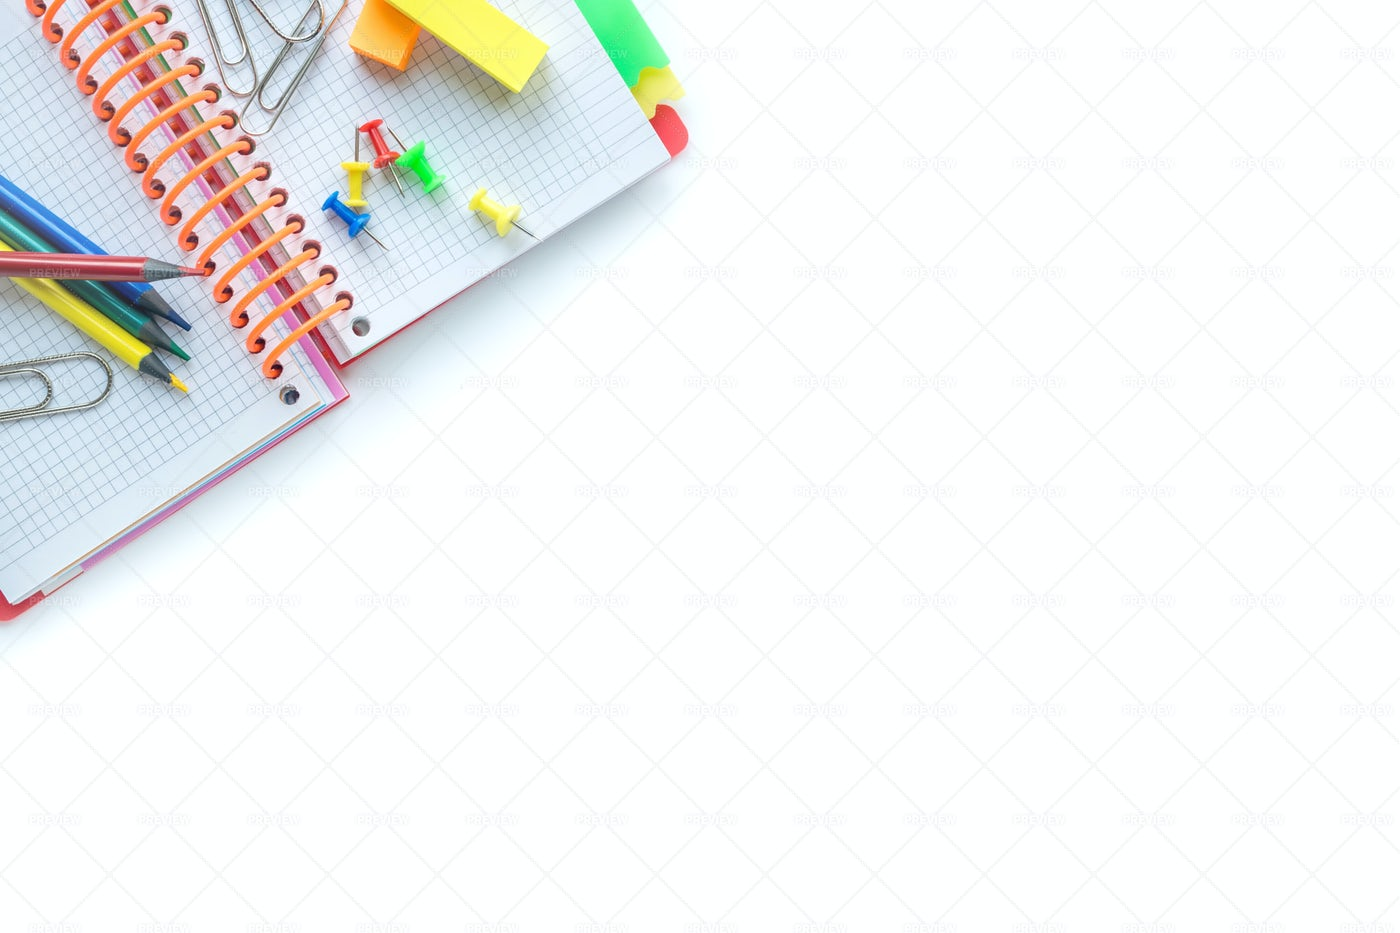 School And Office Supplies: Stock Photos